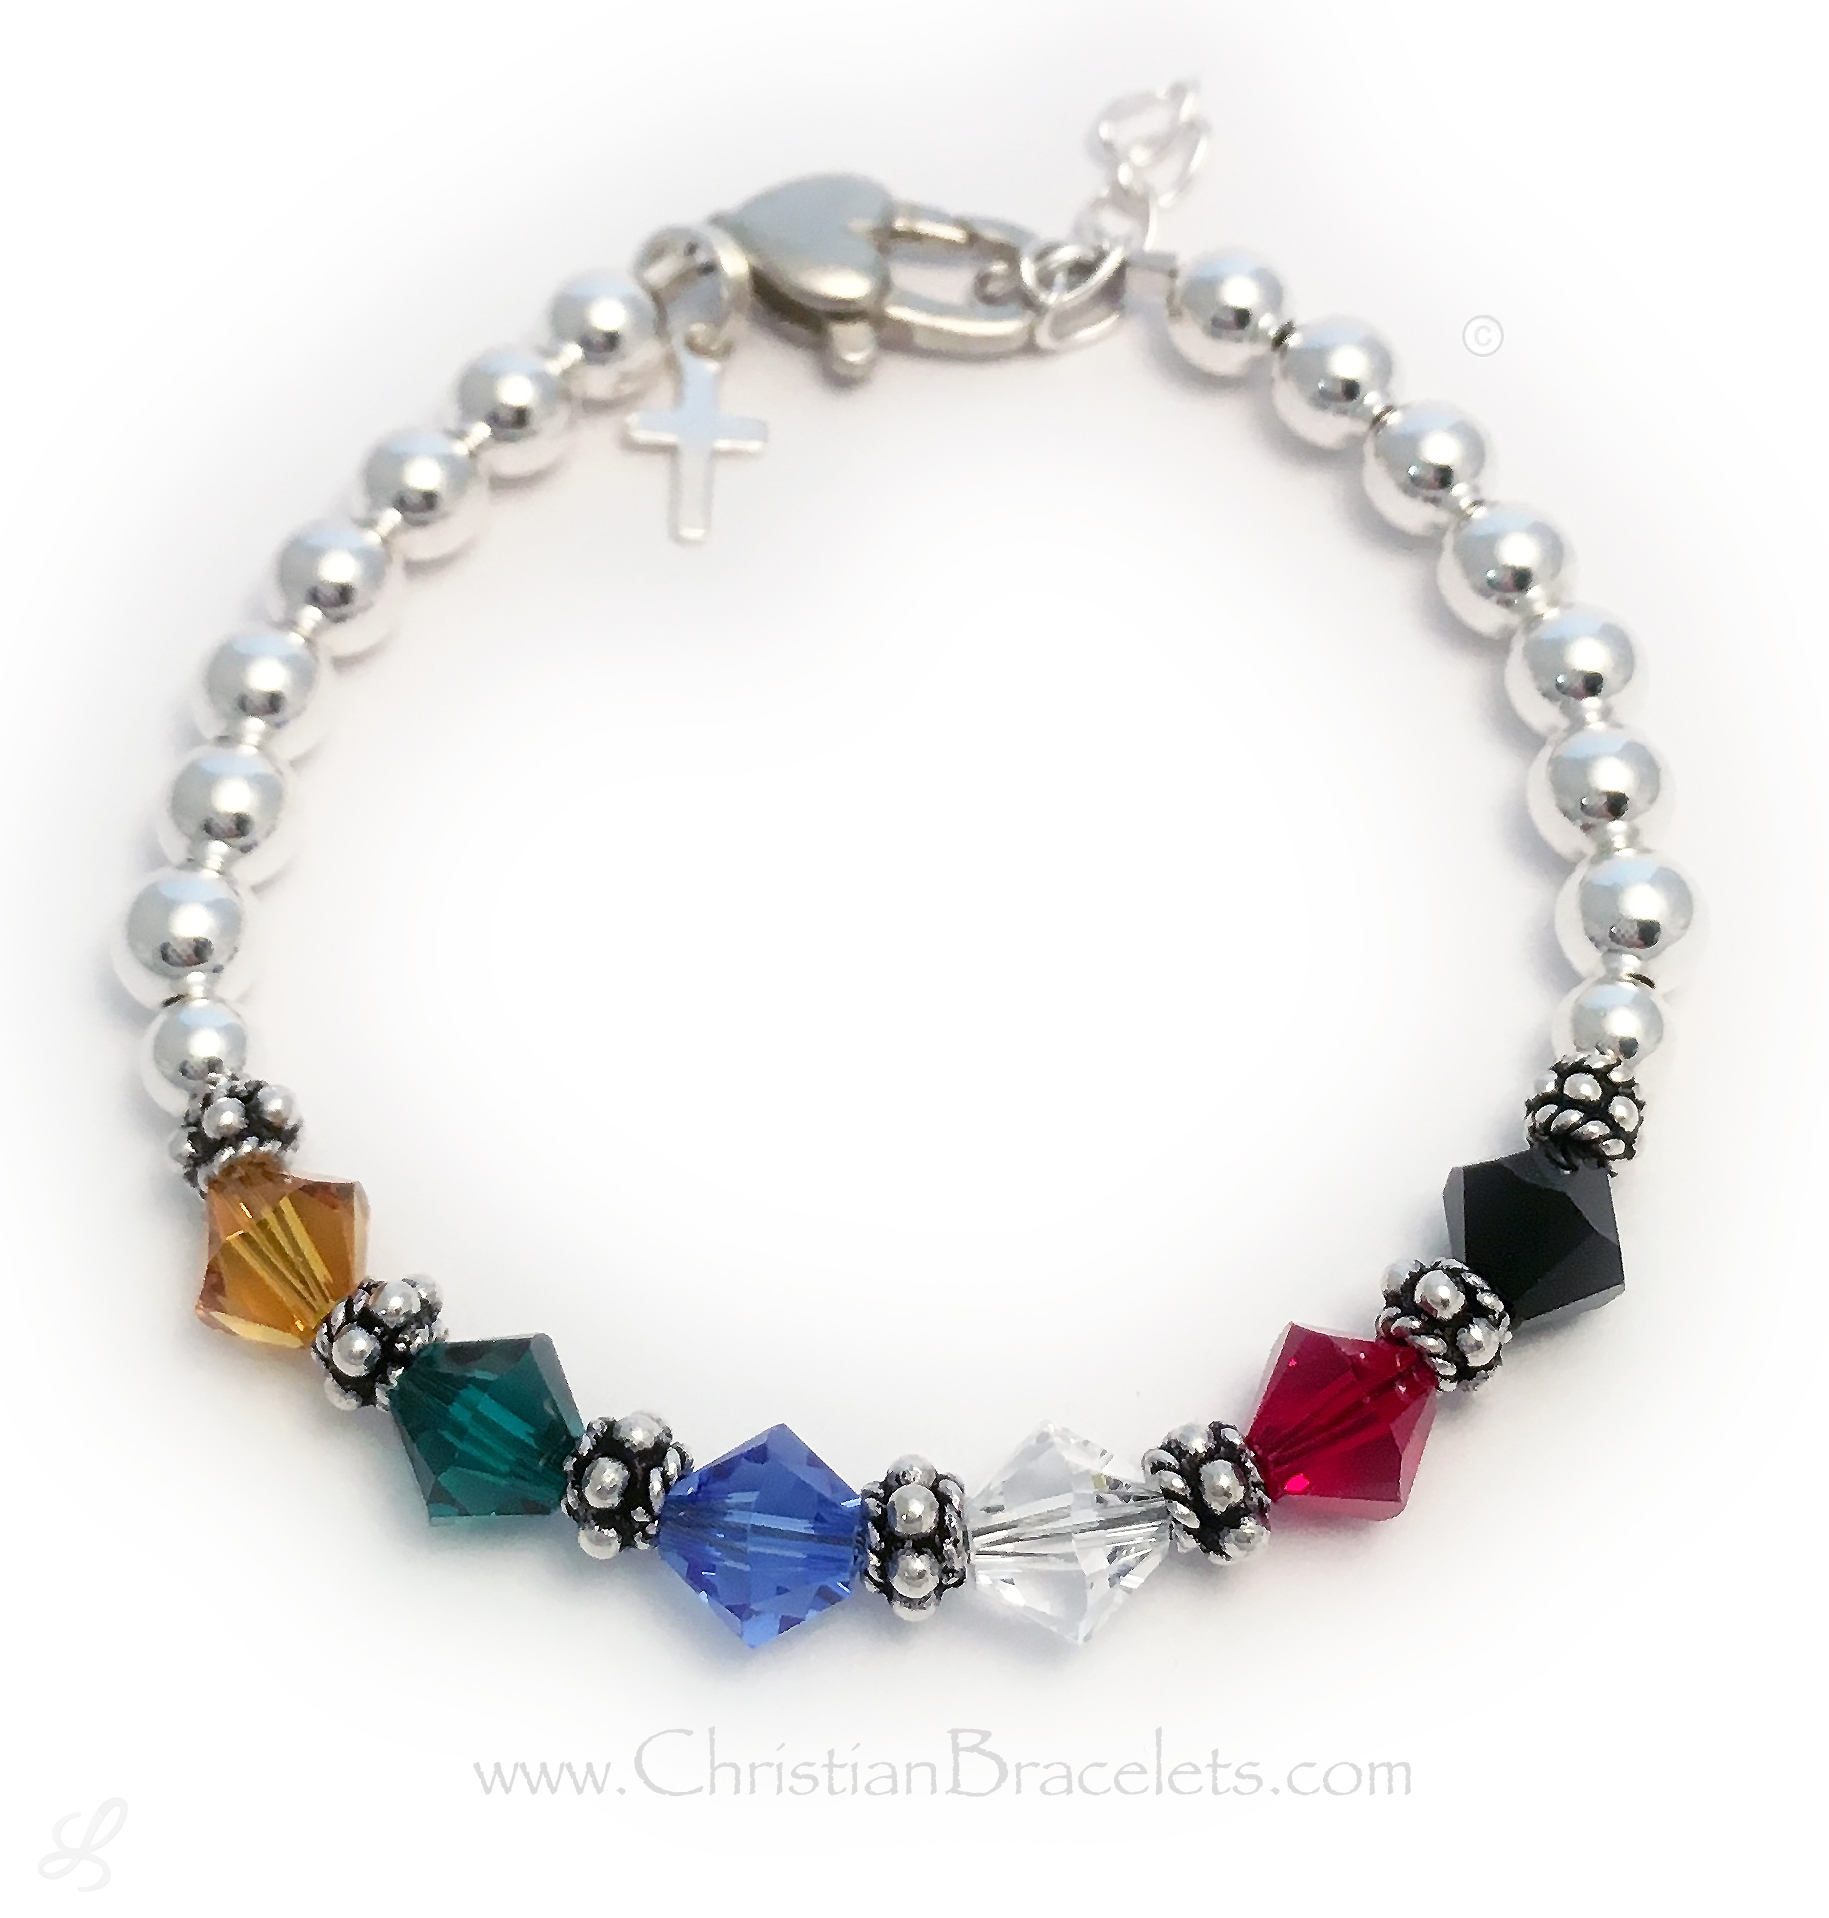 An upgraded Heart Lobster claw clasp with an Extension is shown with 6mm (special order) diamond shaped Swarovski crystal Salvation Bracelet above. The Tiny Sterling Sterling Cross CCharm is included in the price.